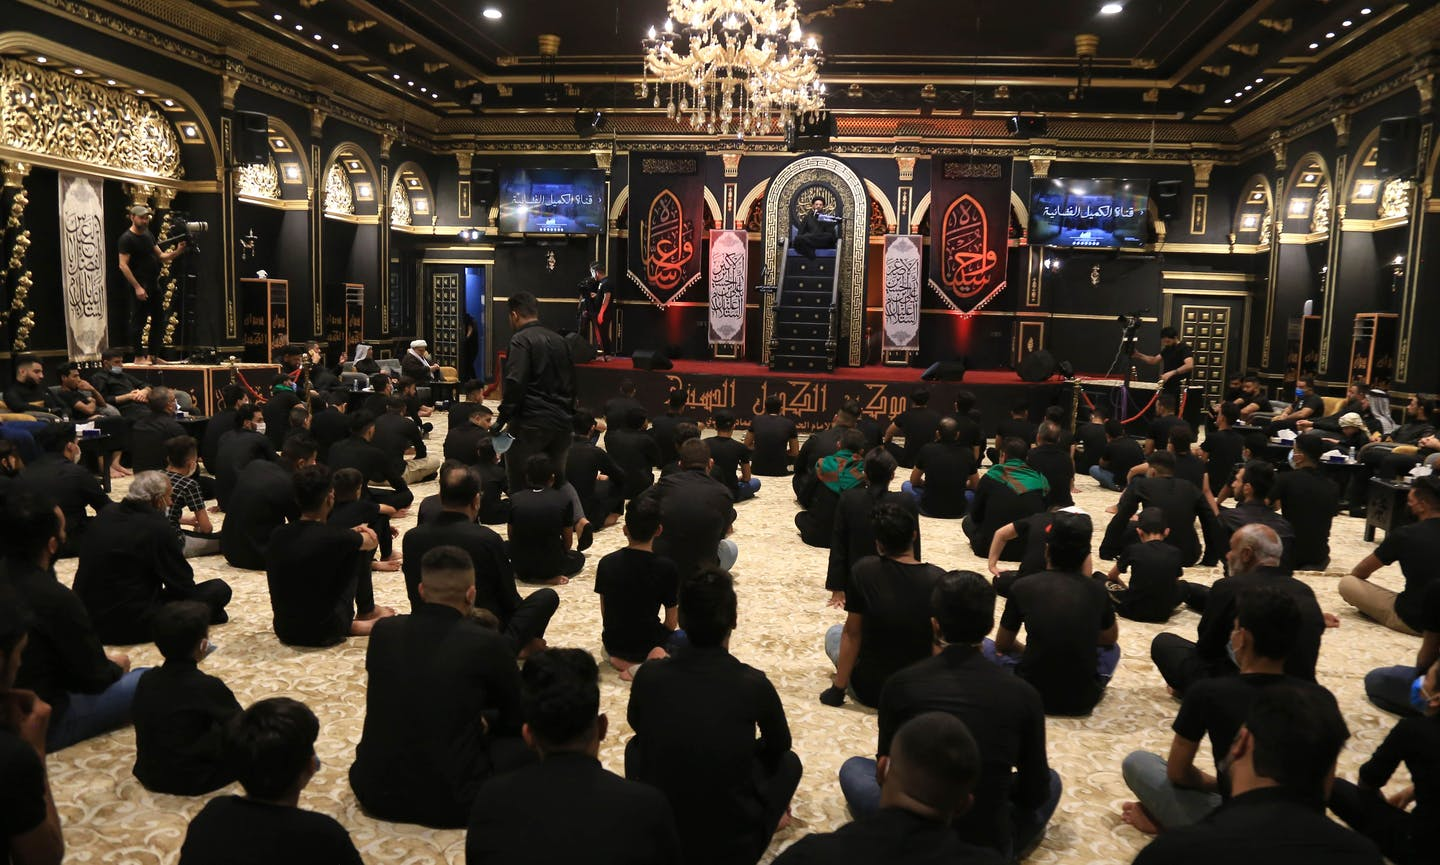 The largest contemporary Muslim pilgrimage isnt the hajj to Mecca, its the Shiite pilgrimage to Karbala in Iraq